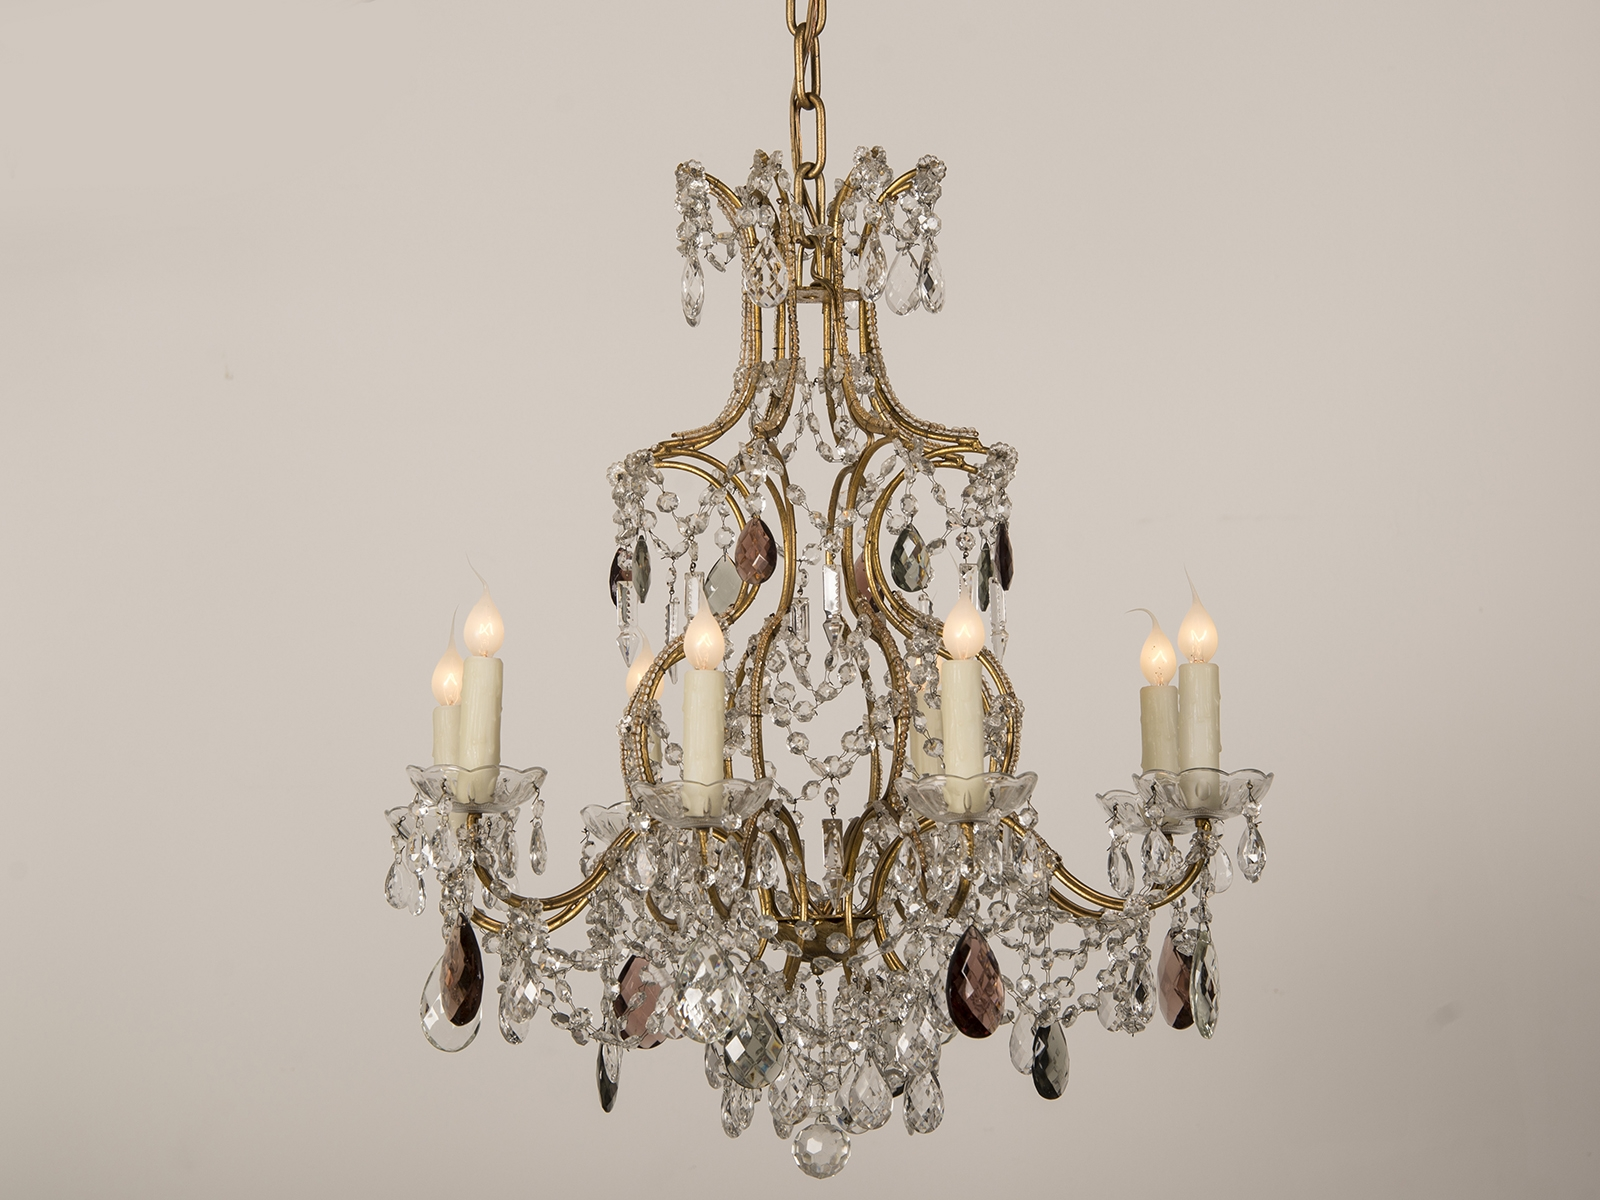 Chandeliers Carl Moore Antiques With Regard To Scandinavian Chandeliers (Image 4 of 15)